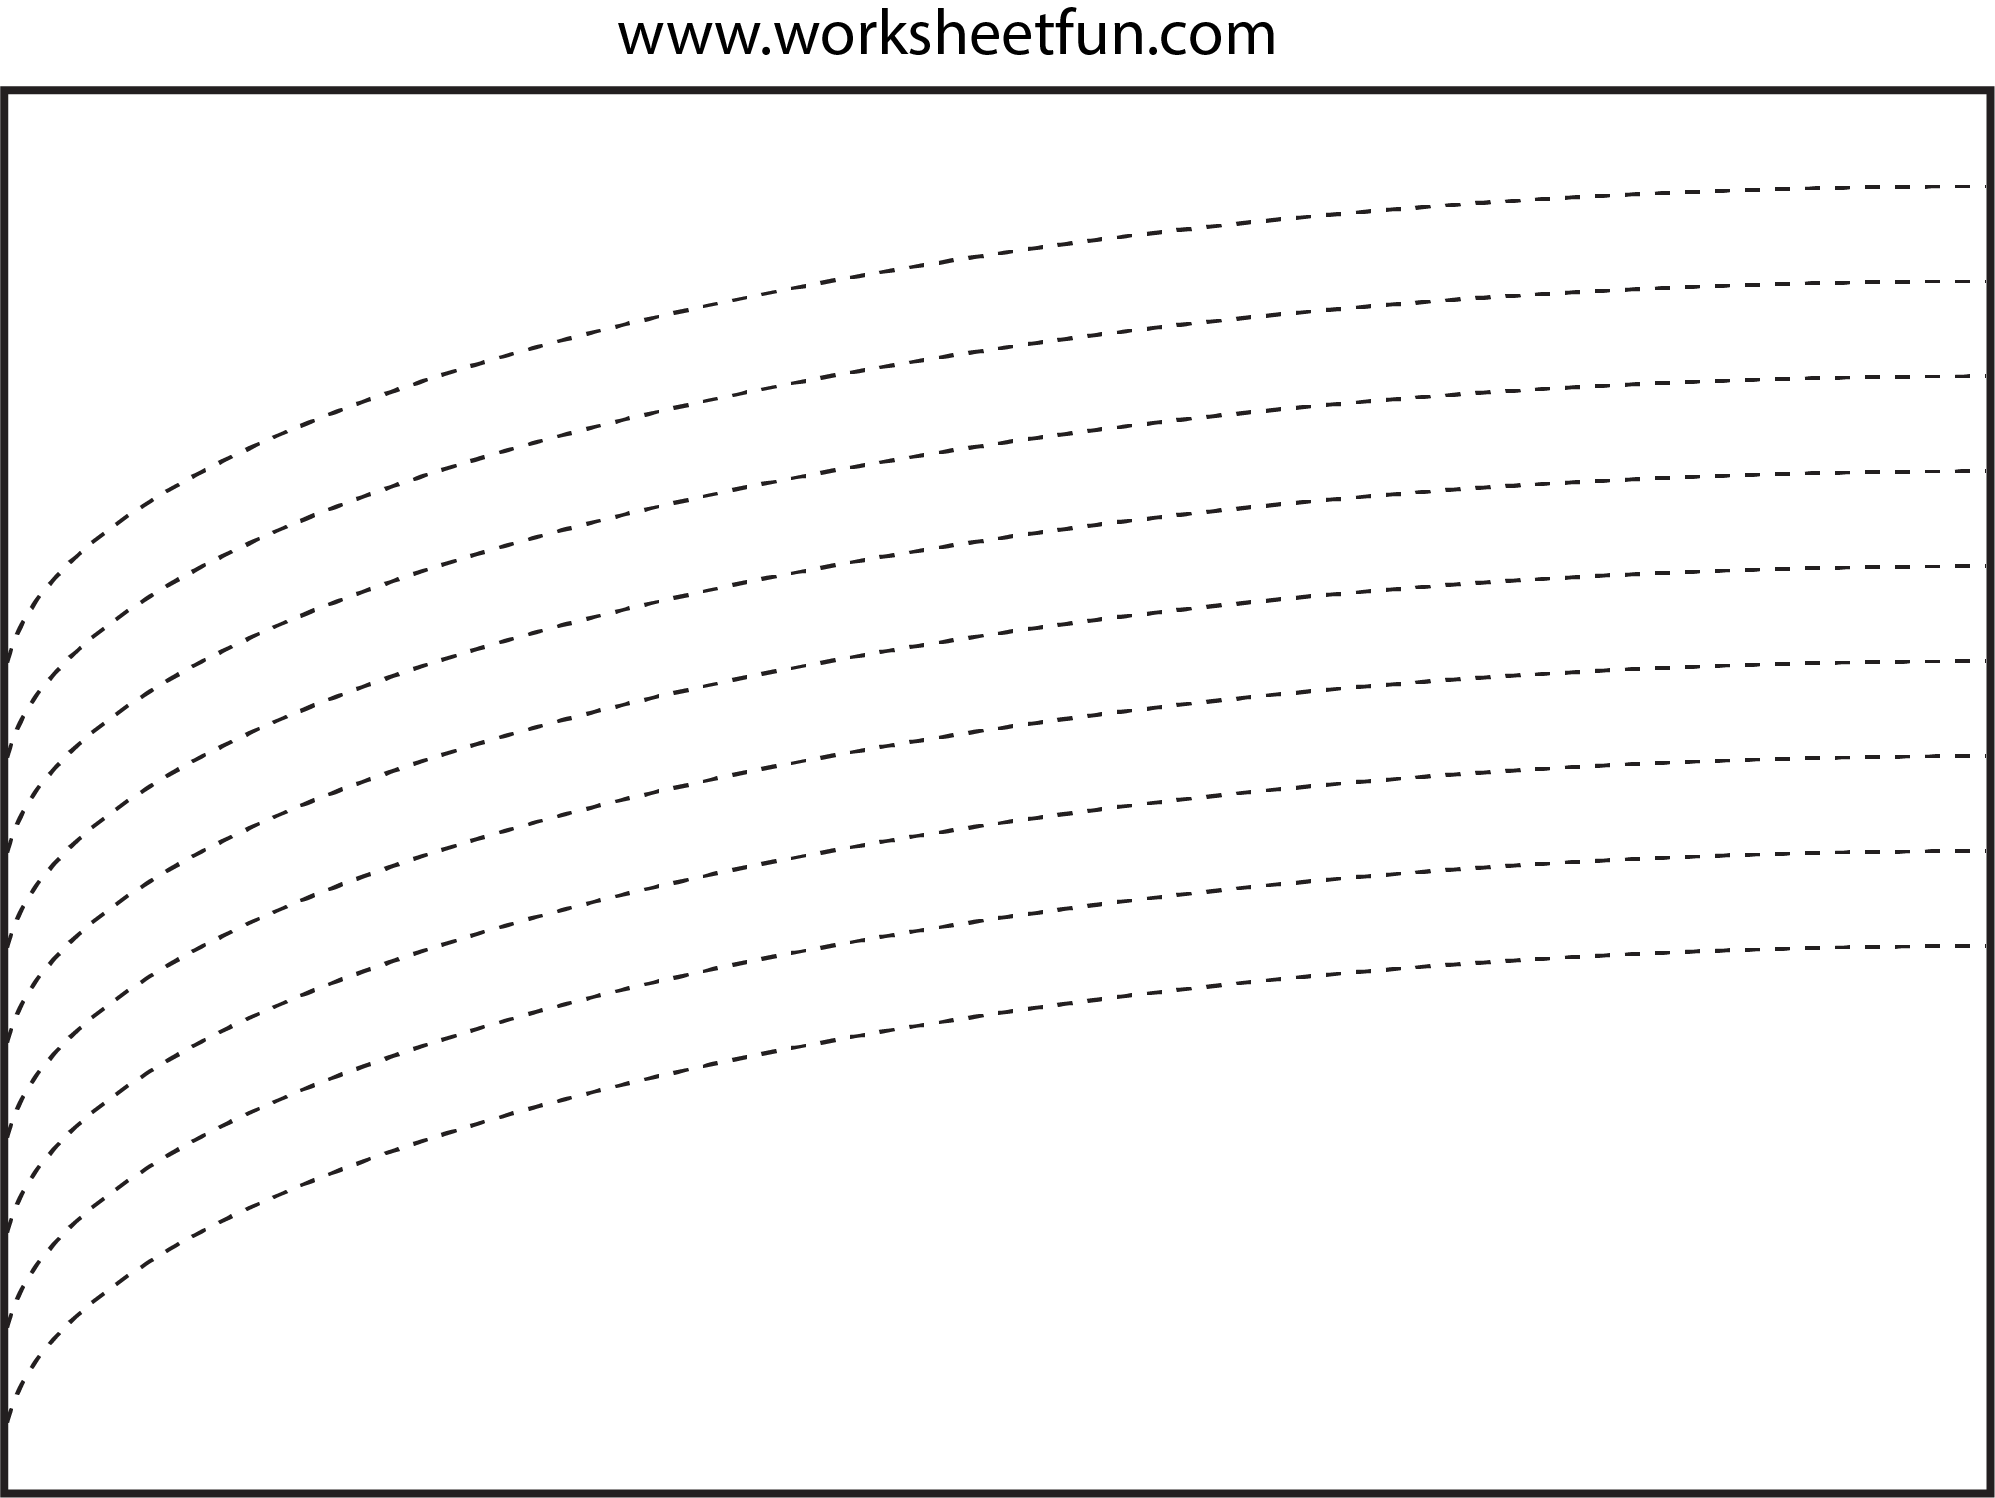 Curved Line Tracing 4 Worksheets Free Printable Worksheets Worksheetfun